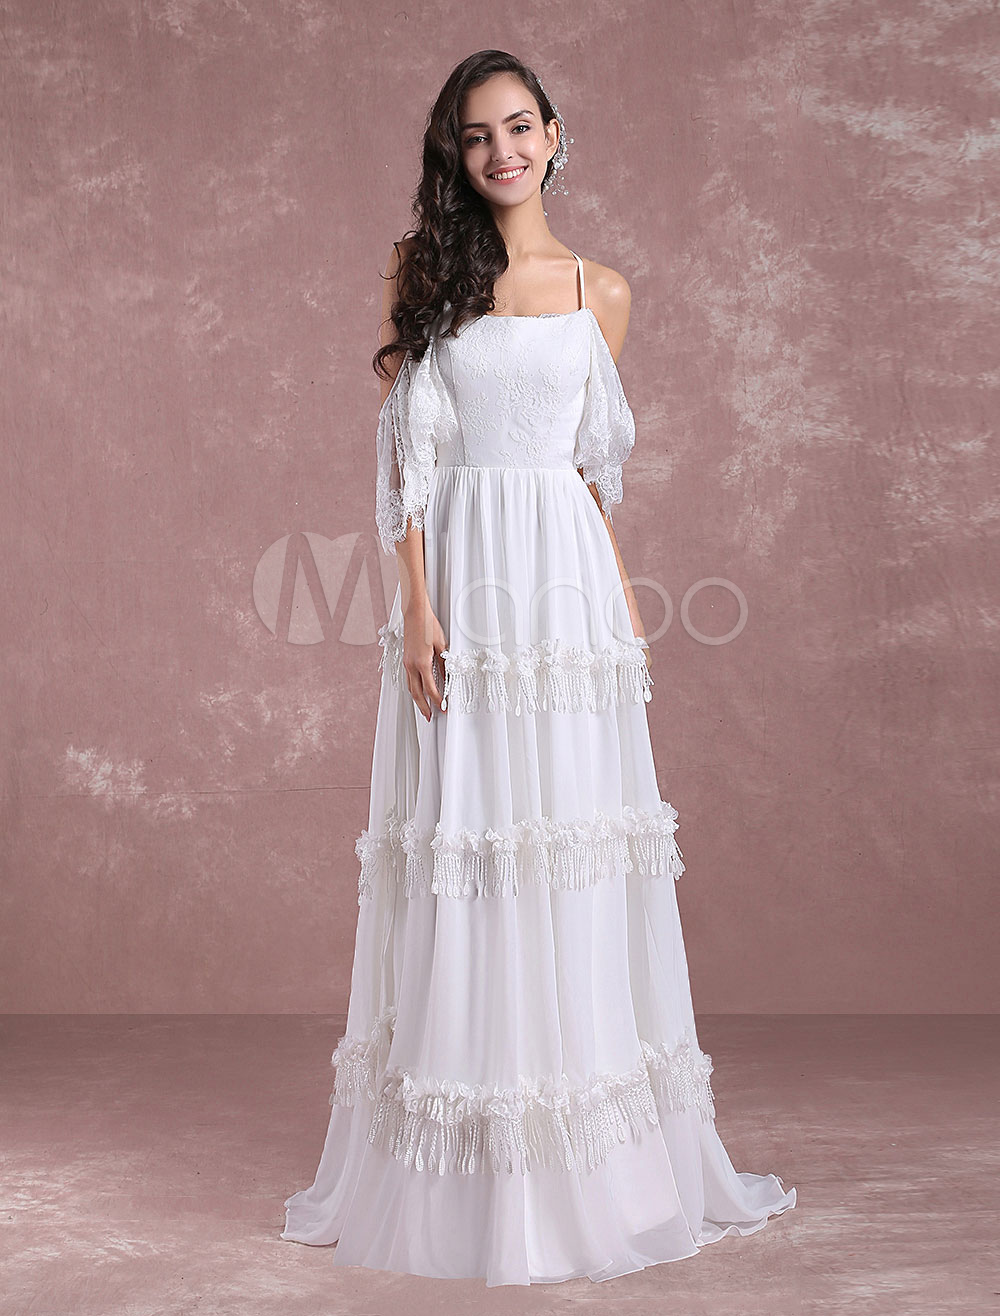 98f1795d3c ... Boho Wedding Dresses 2019 Summer Lace Chiffon Beach Bridal Gown Off The  Shoulder Back Cross Tiered. 12. 45%OFF. Color:White